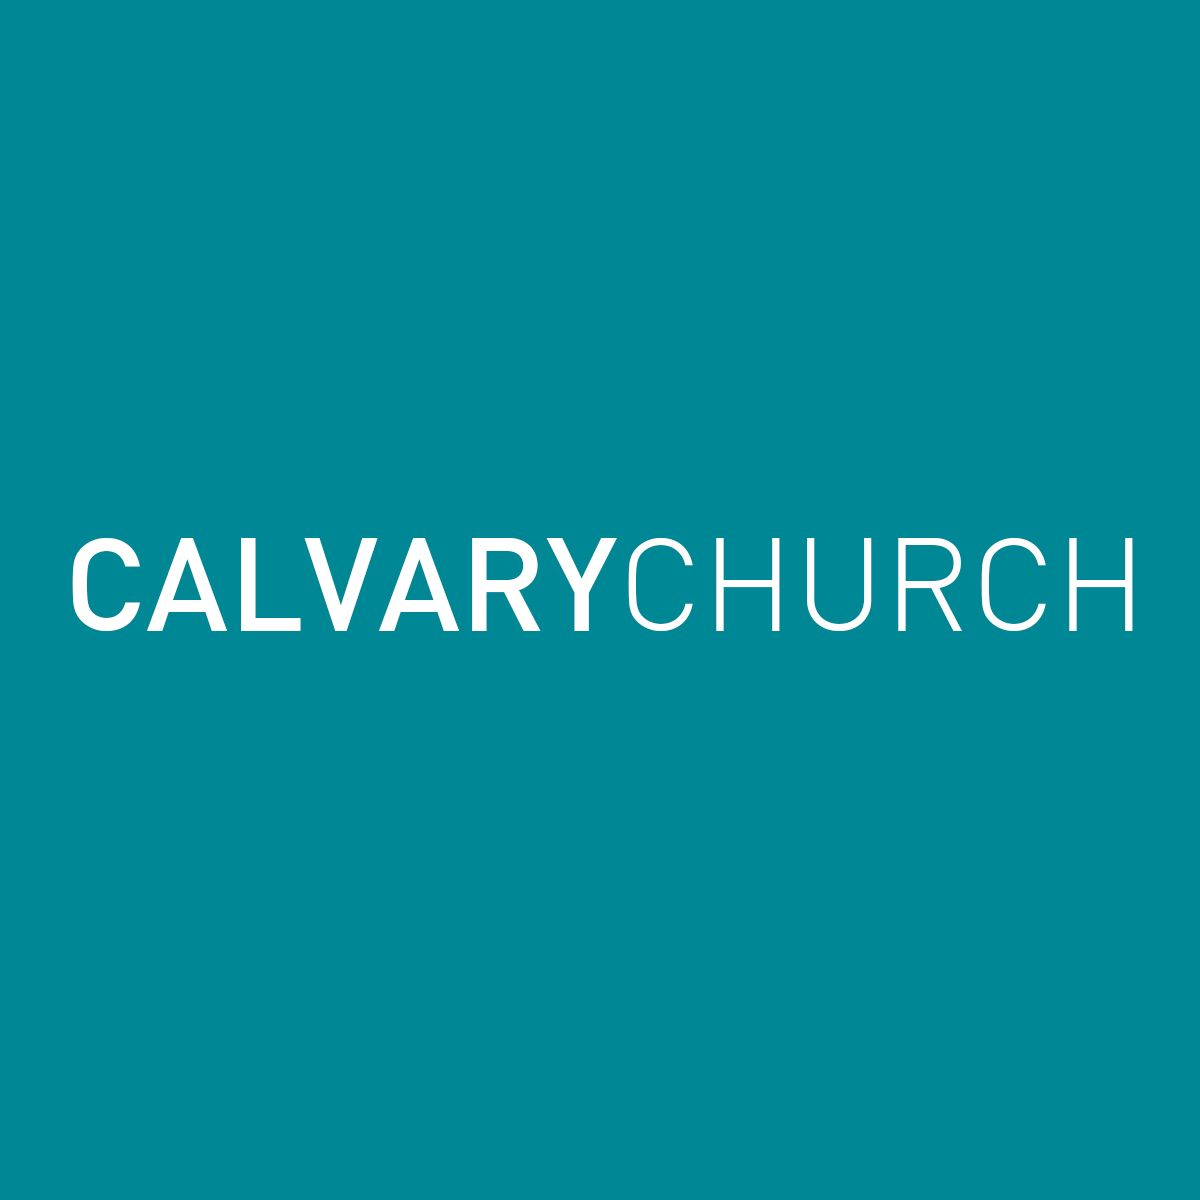 Calvary Church - Maumee